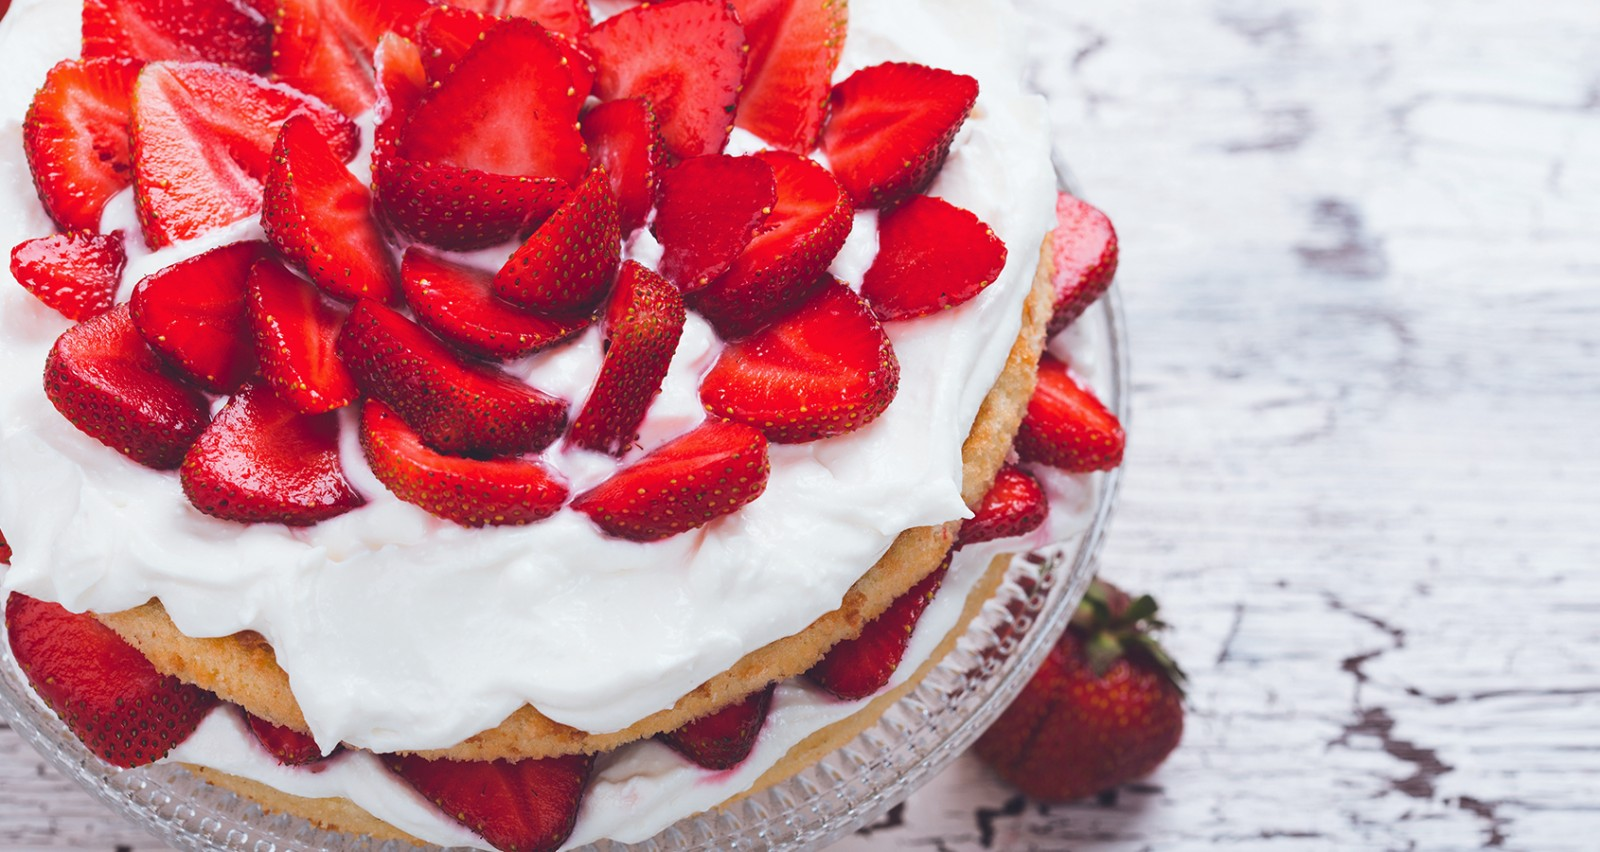 GBBO Finals Week: Victoria sponge recipe